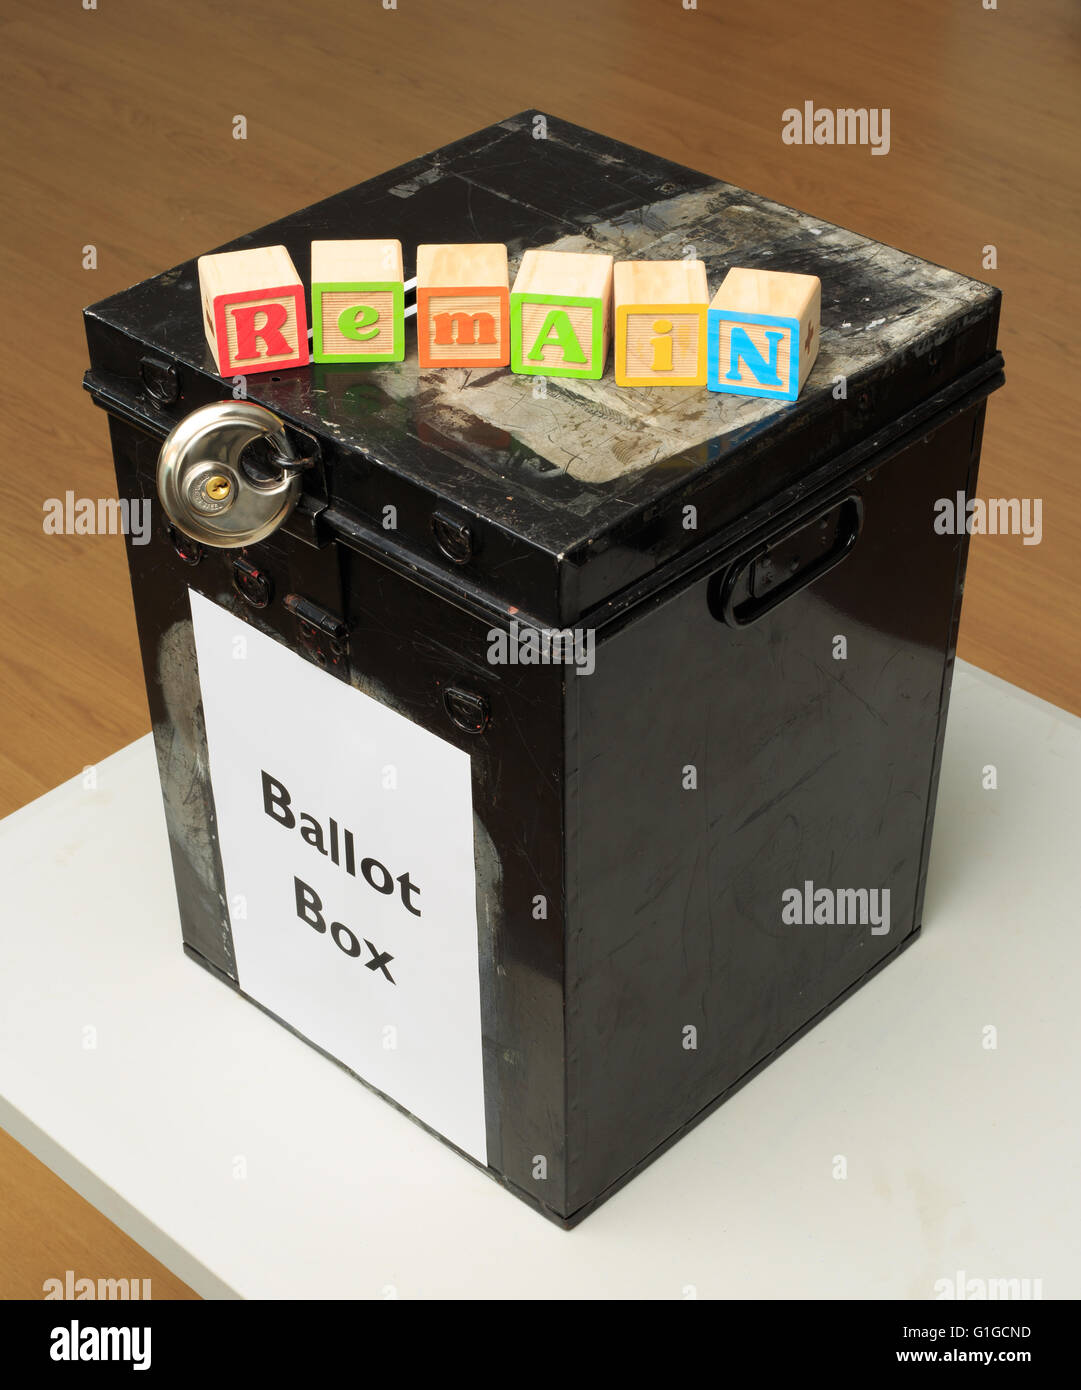 UK ballot box and childs' ABC blocks stating 'Remain' in reference to the referendum on EU membership - Stock Image